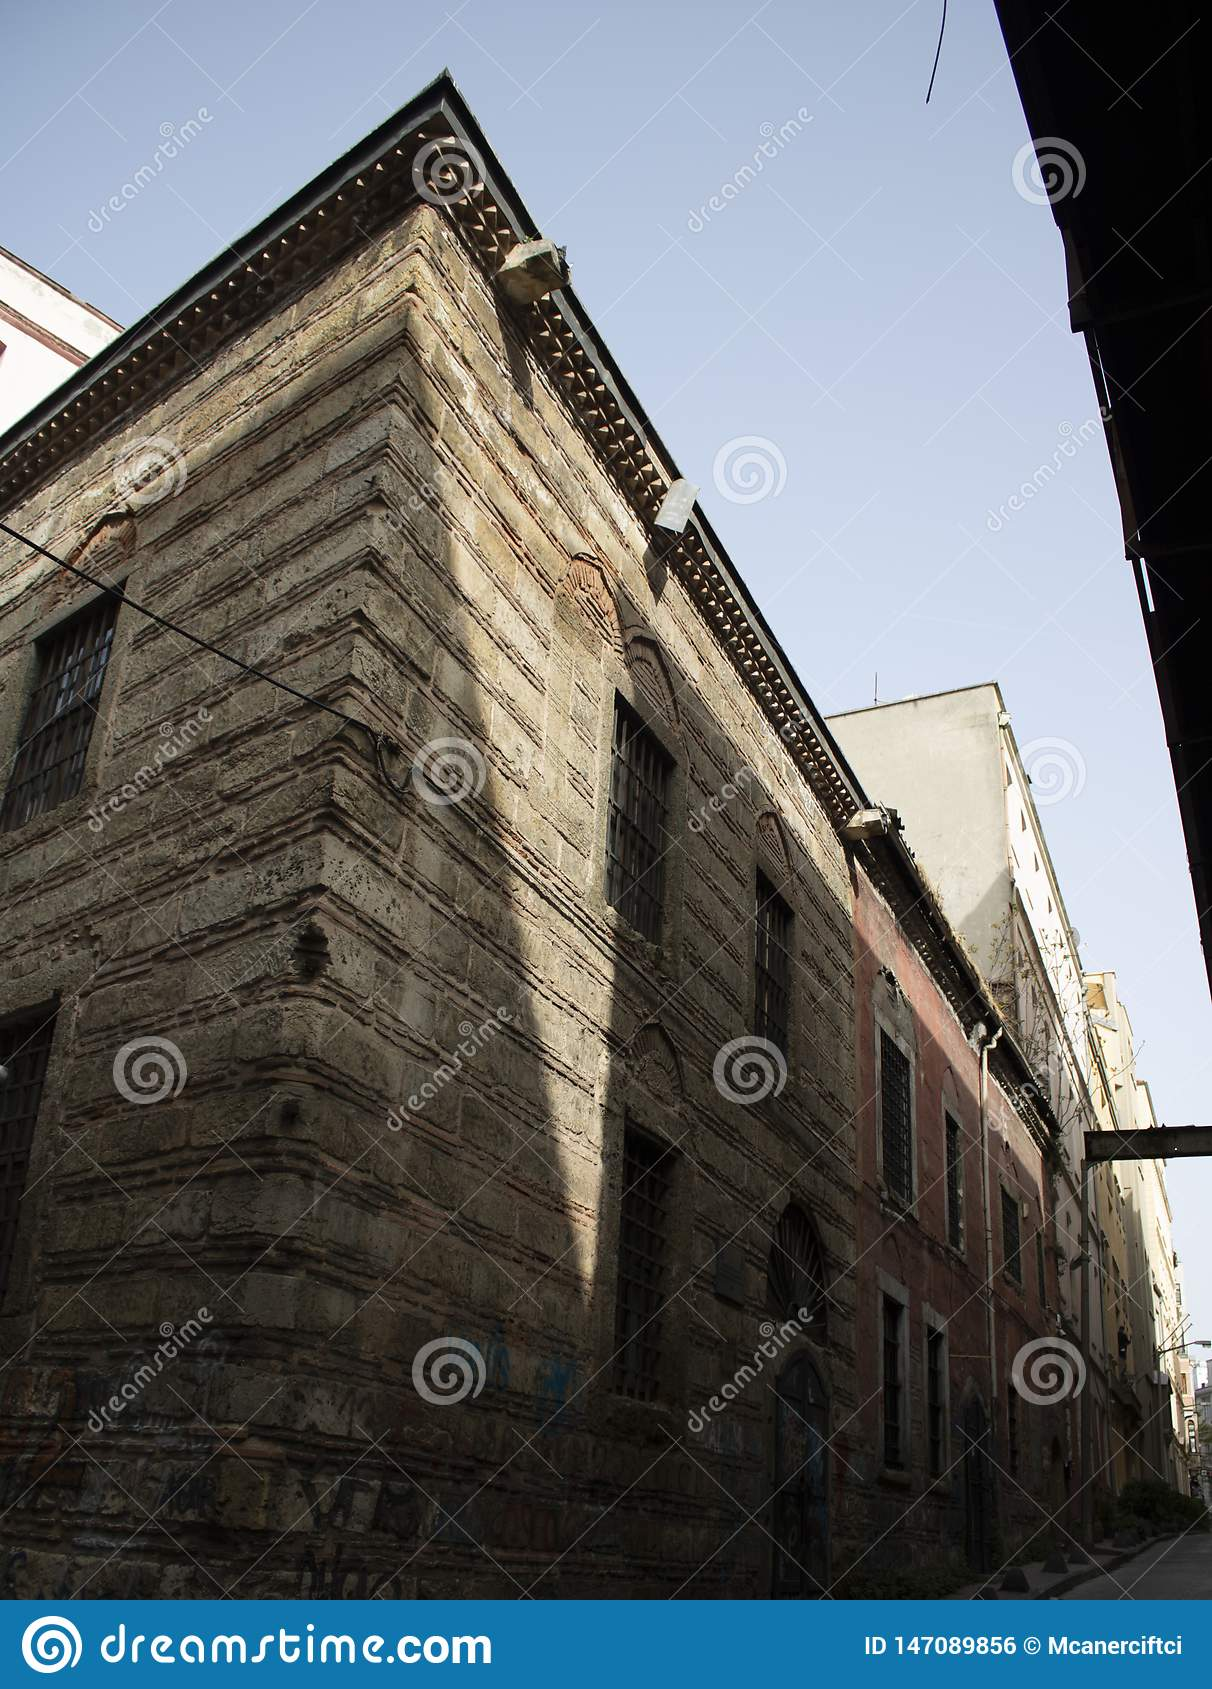 Shoot of old architectural buildings inside the street